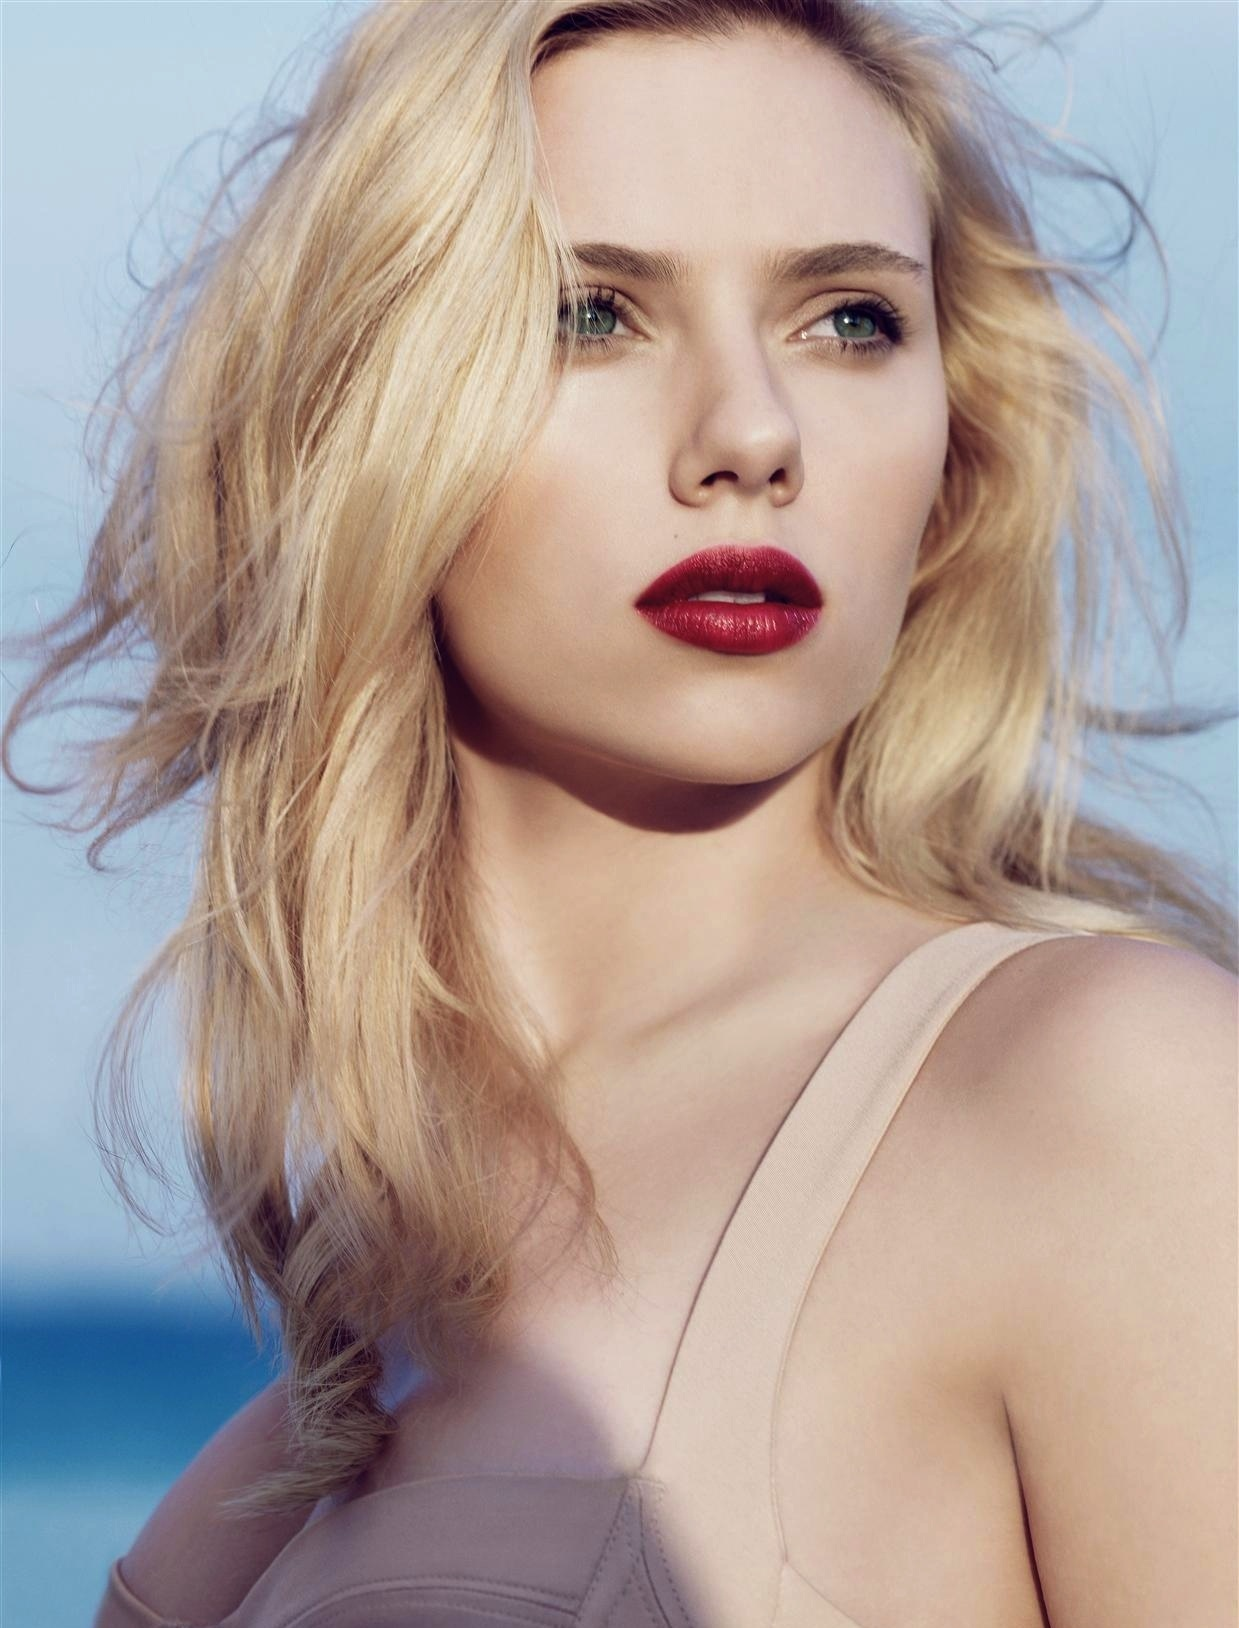 Scarlett | Vogue USA 2007.